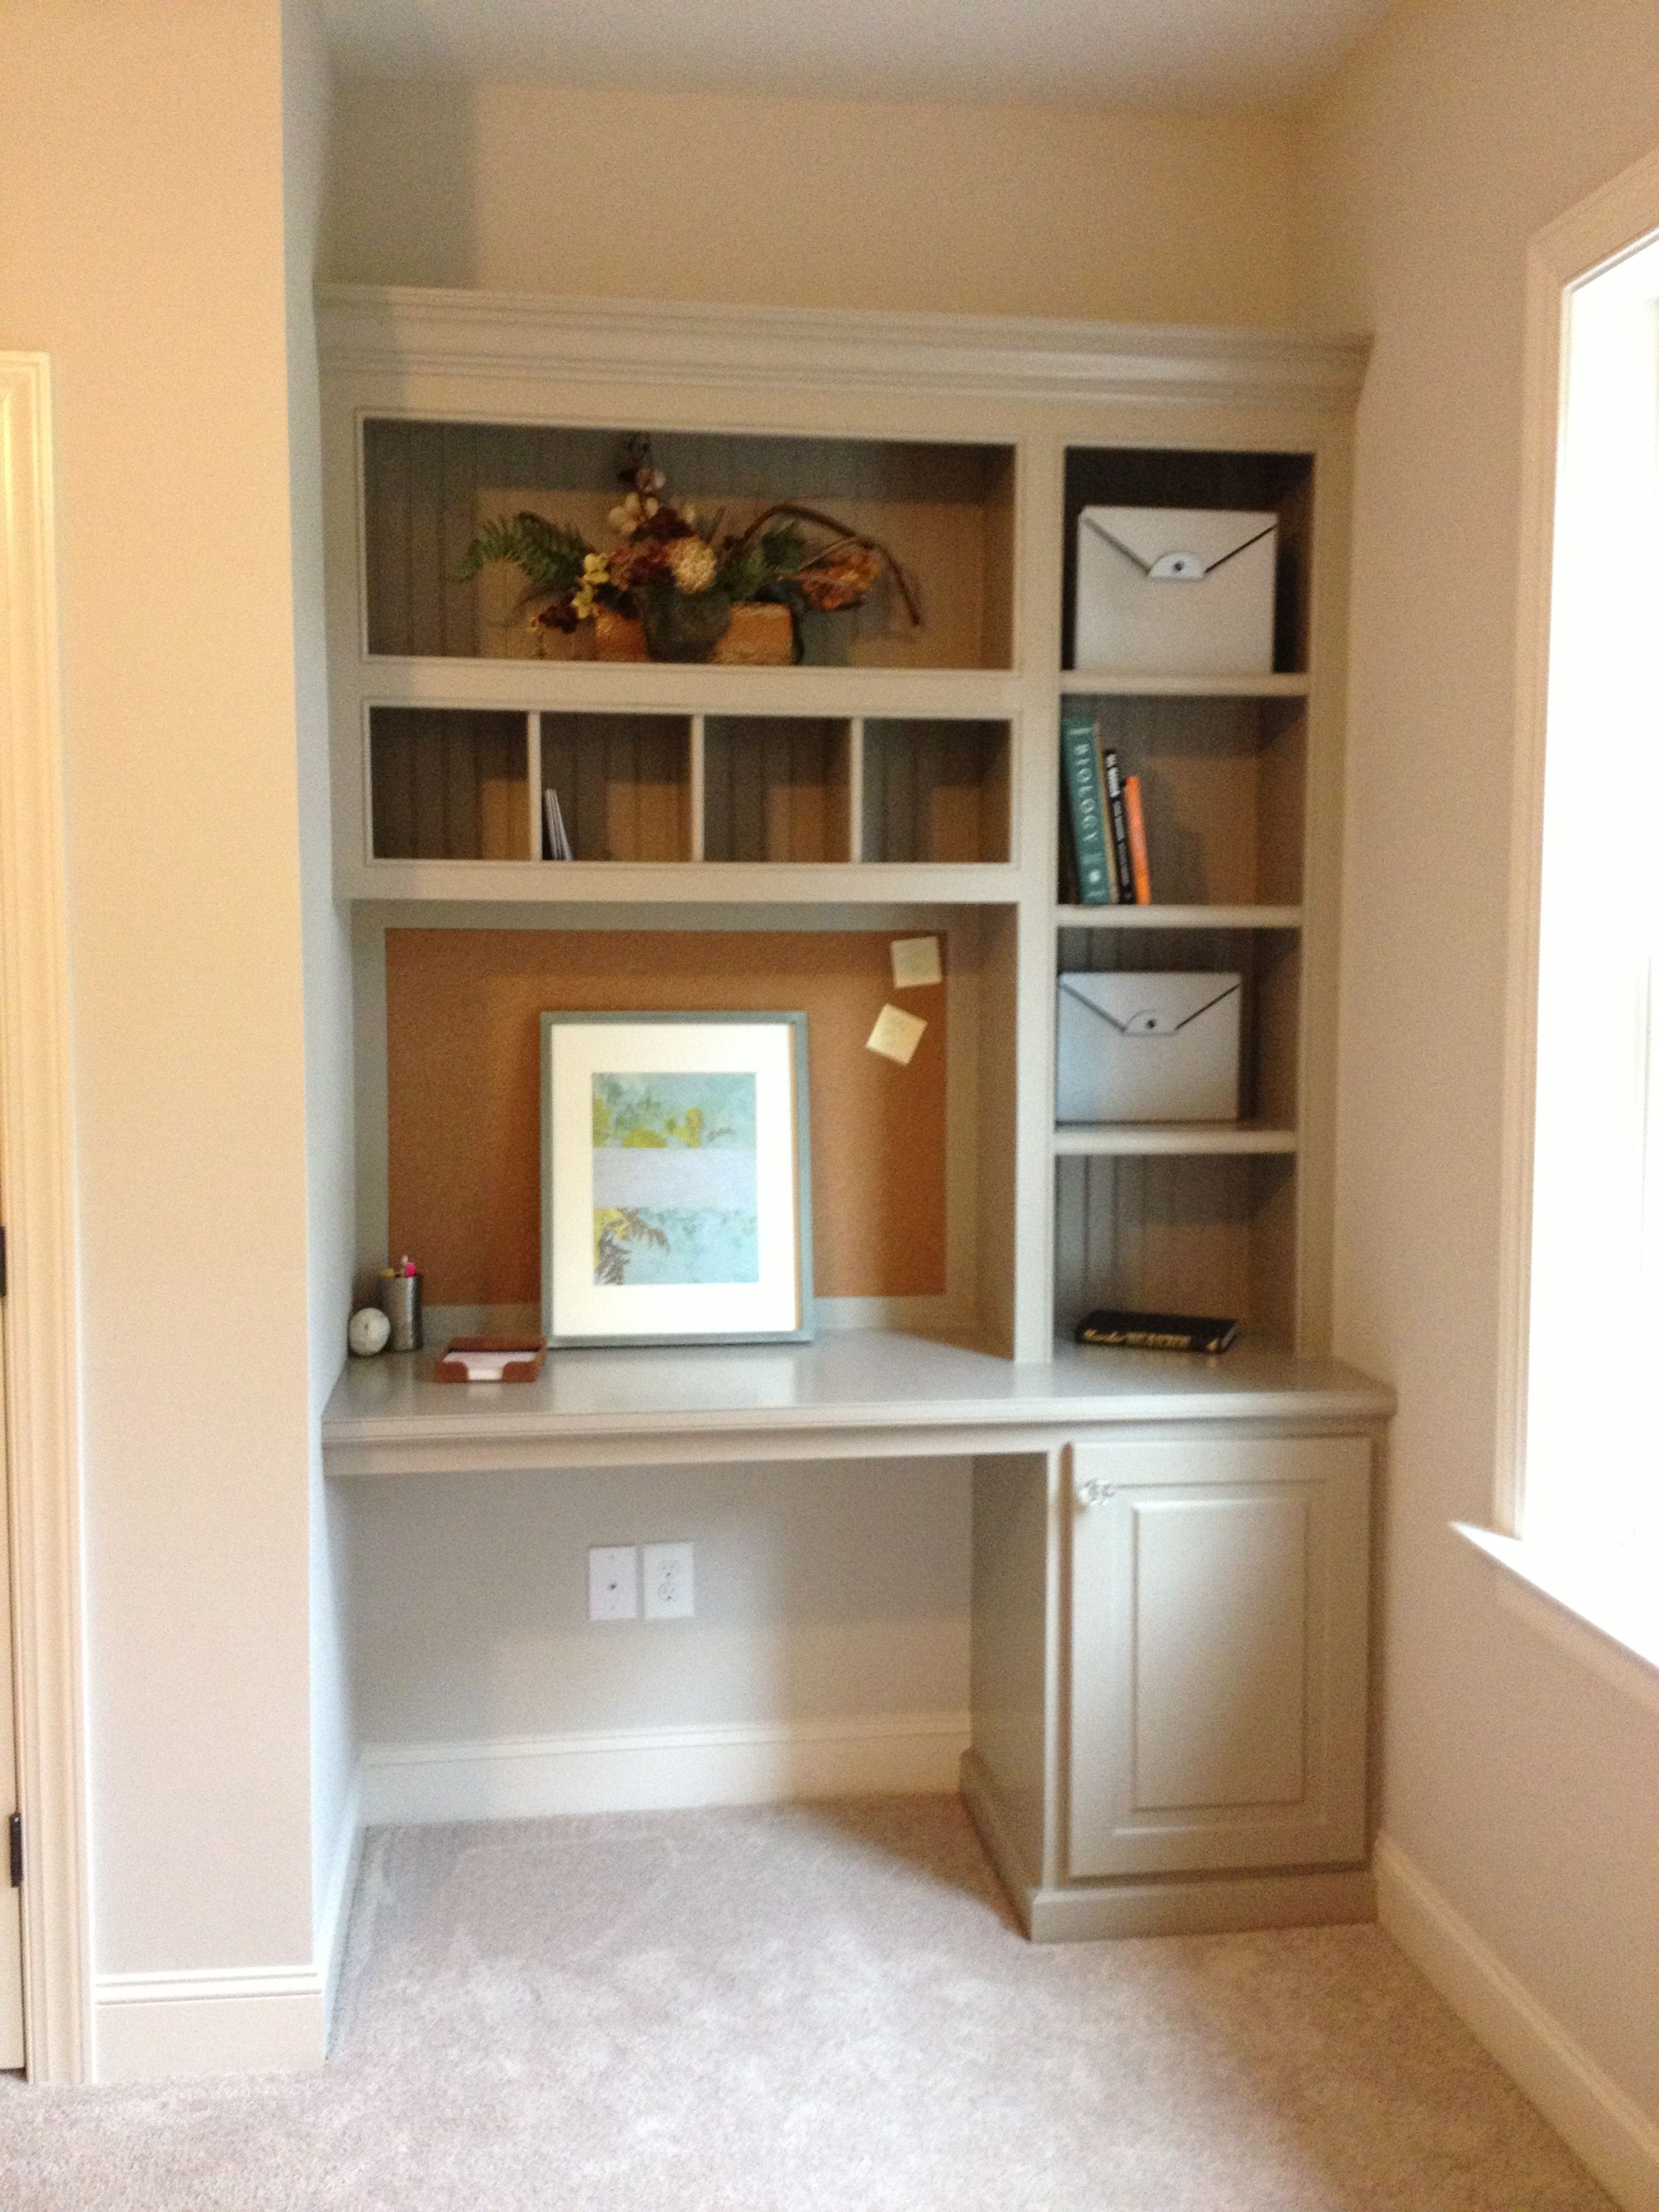 Pin by Cortney Ringsdorf on Designing our Home   Home office ...